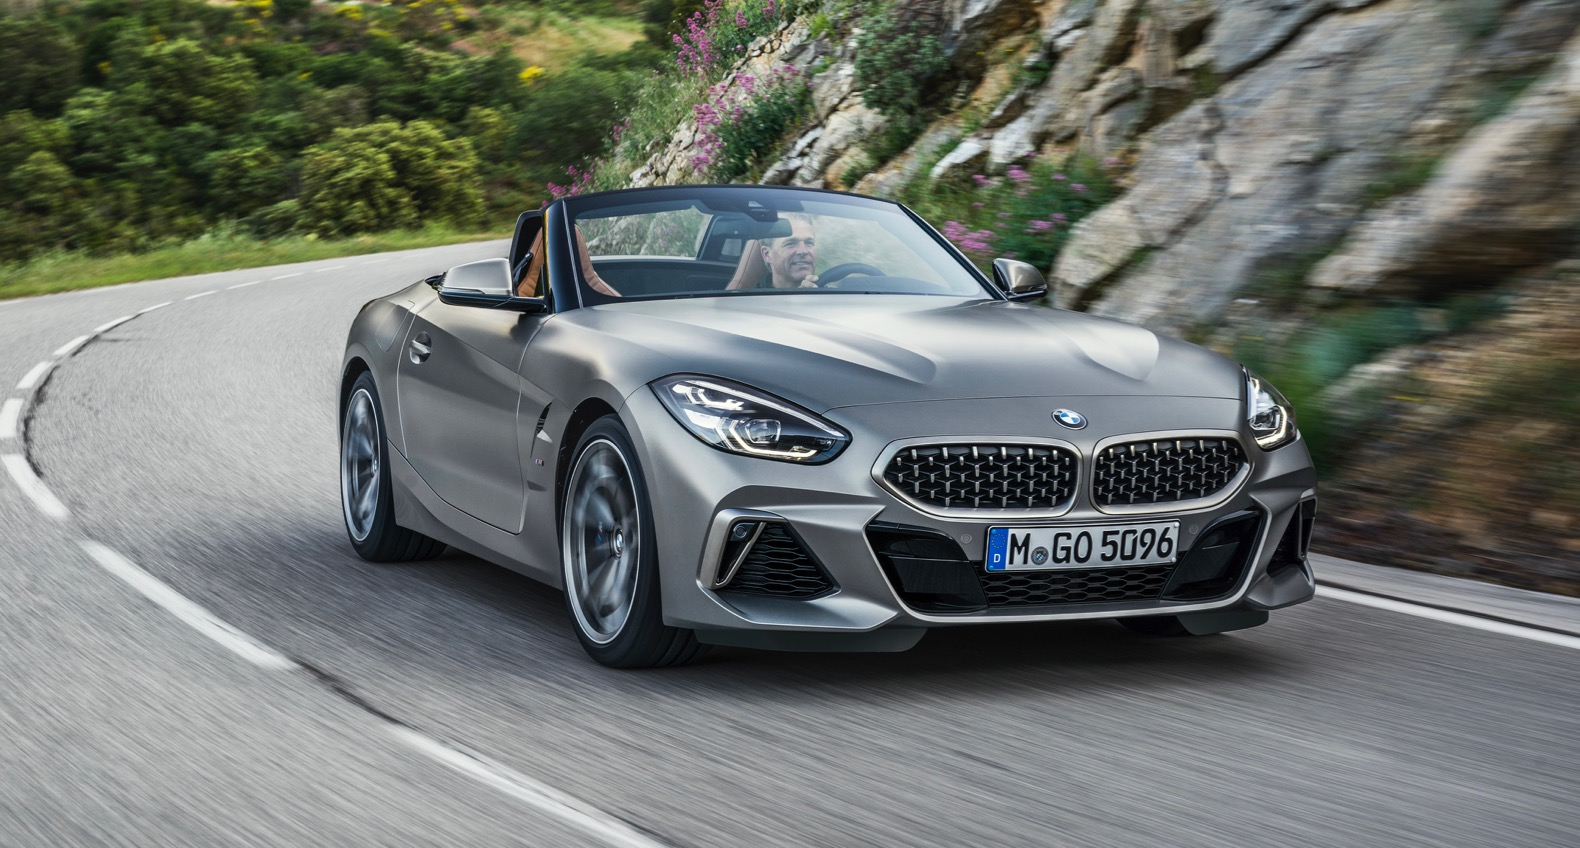 49 New 2020 BMW Z4 Wallpaper